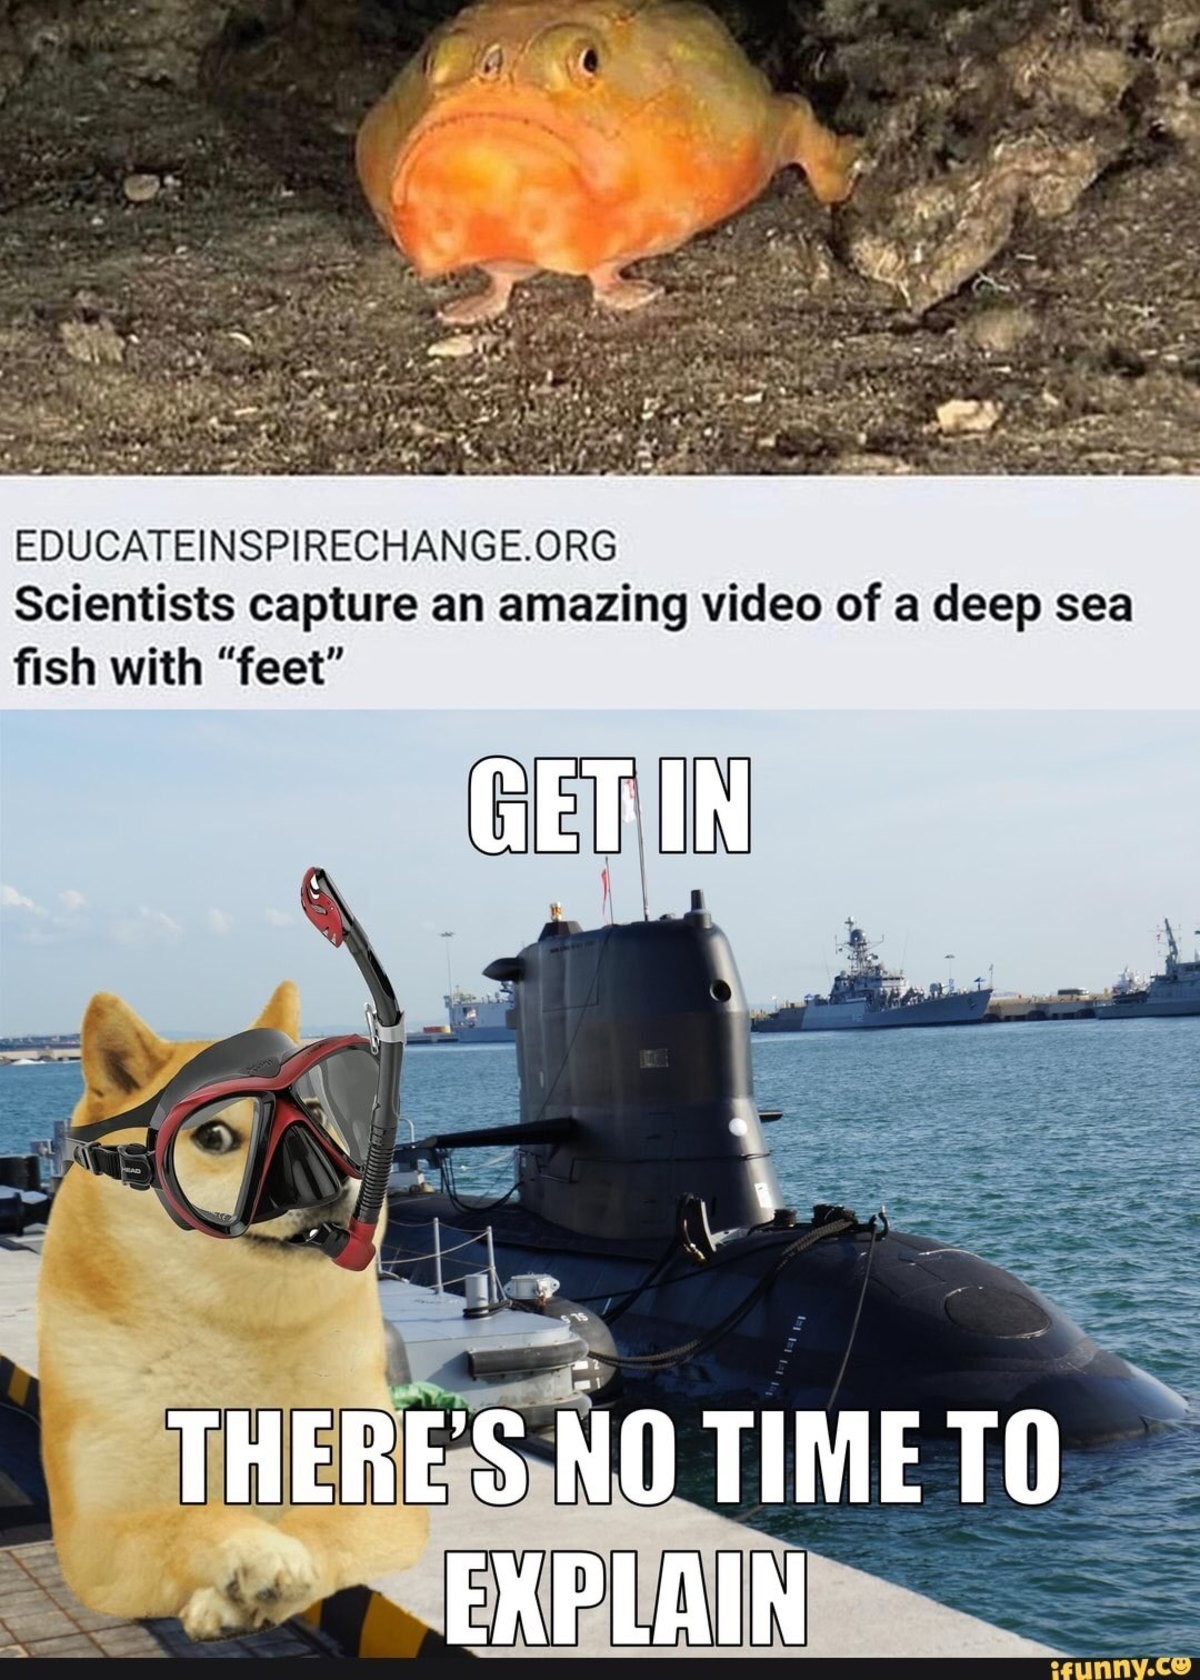 endurable ragged well-informed Herring. .. When did doge start being into feet..?